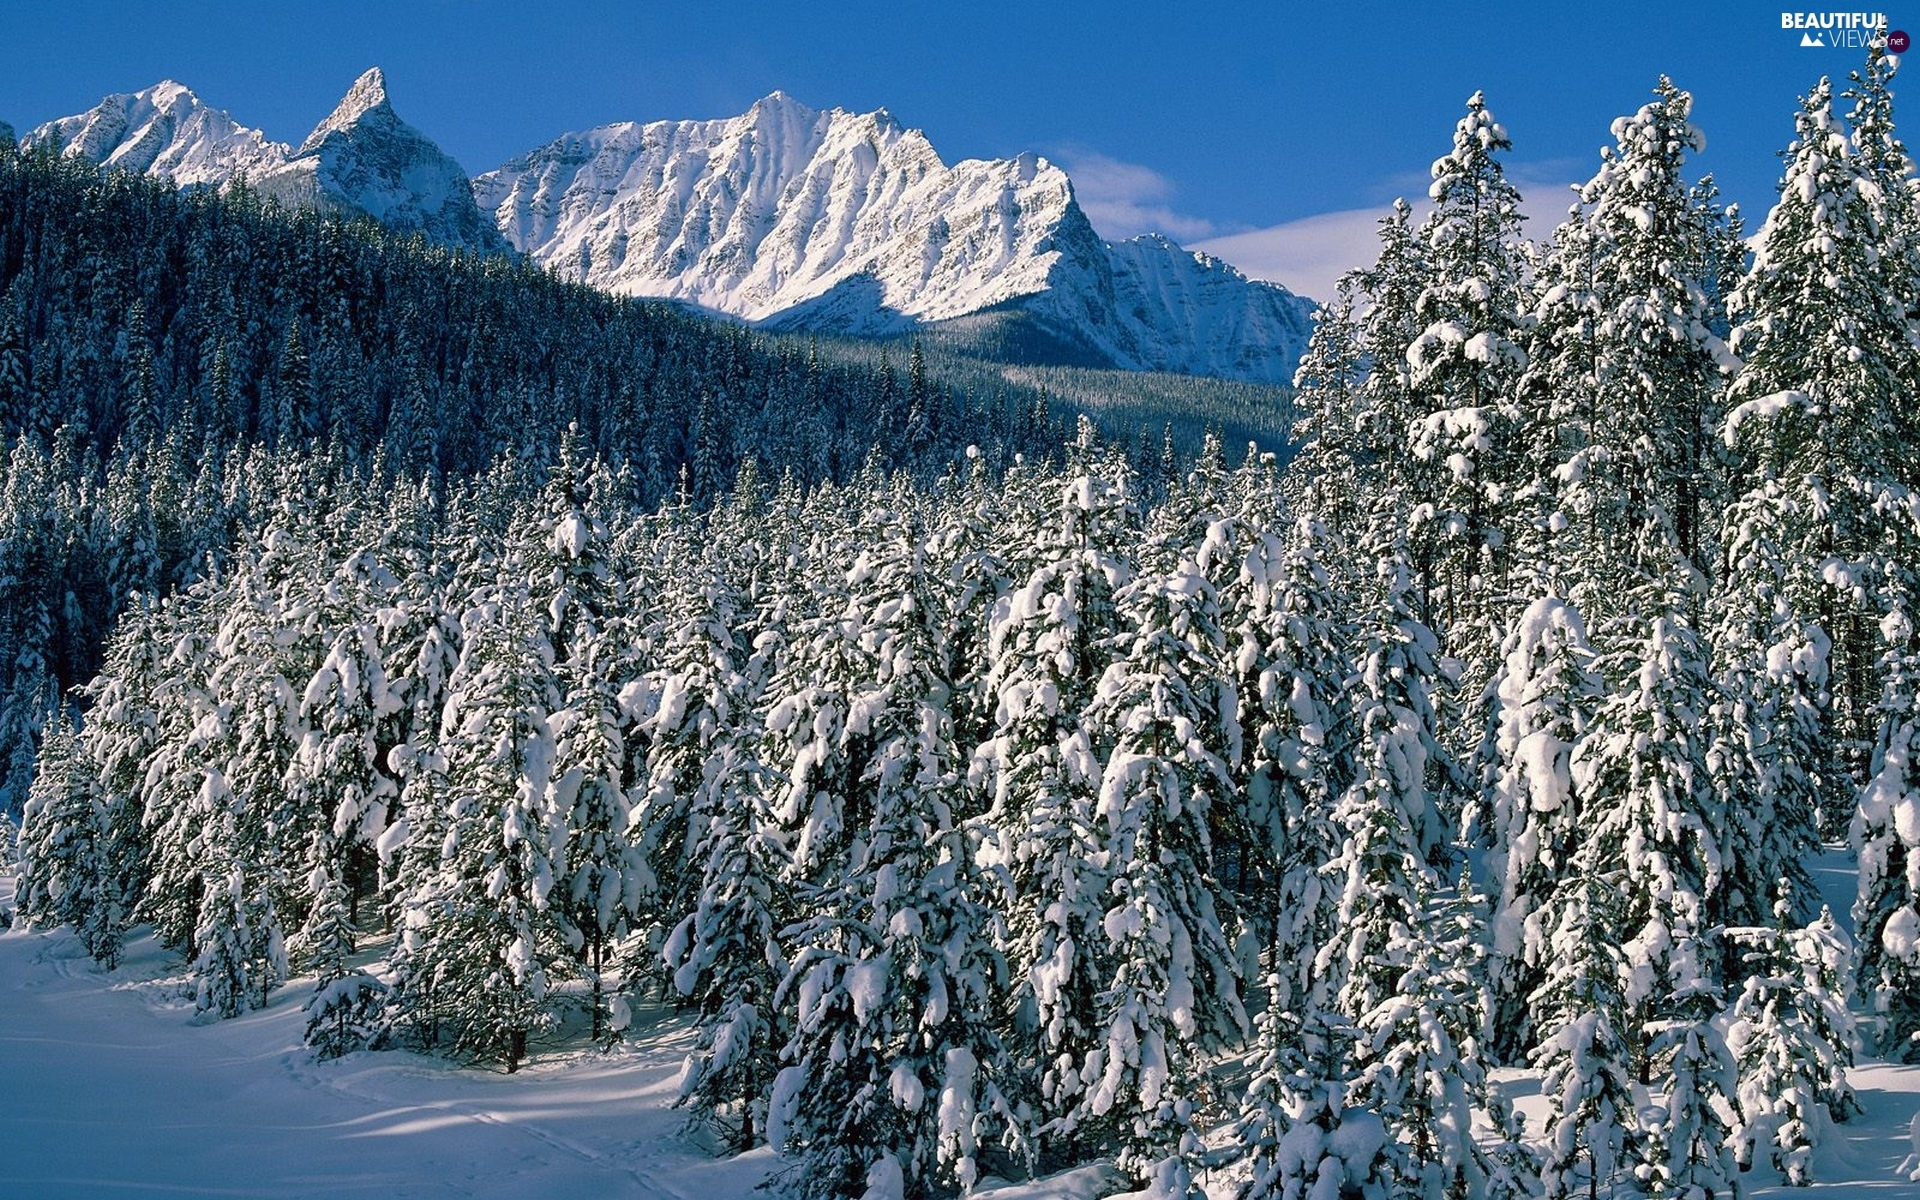 Mountains, Snowy, Spruces, winter